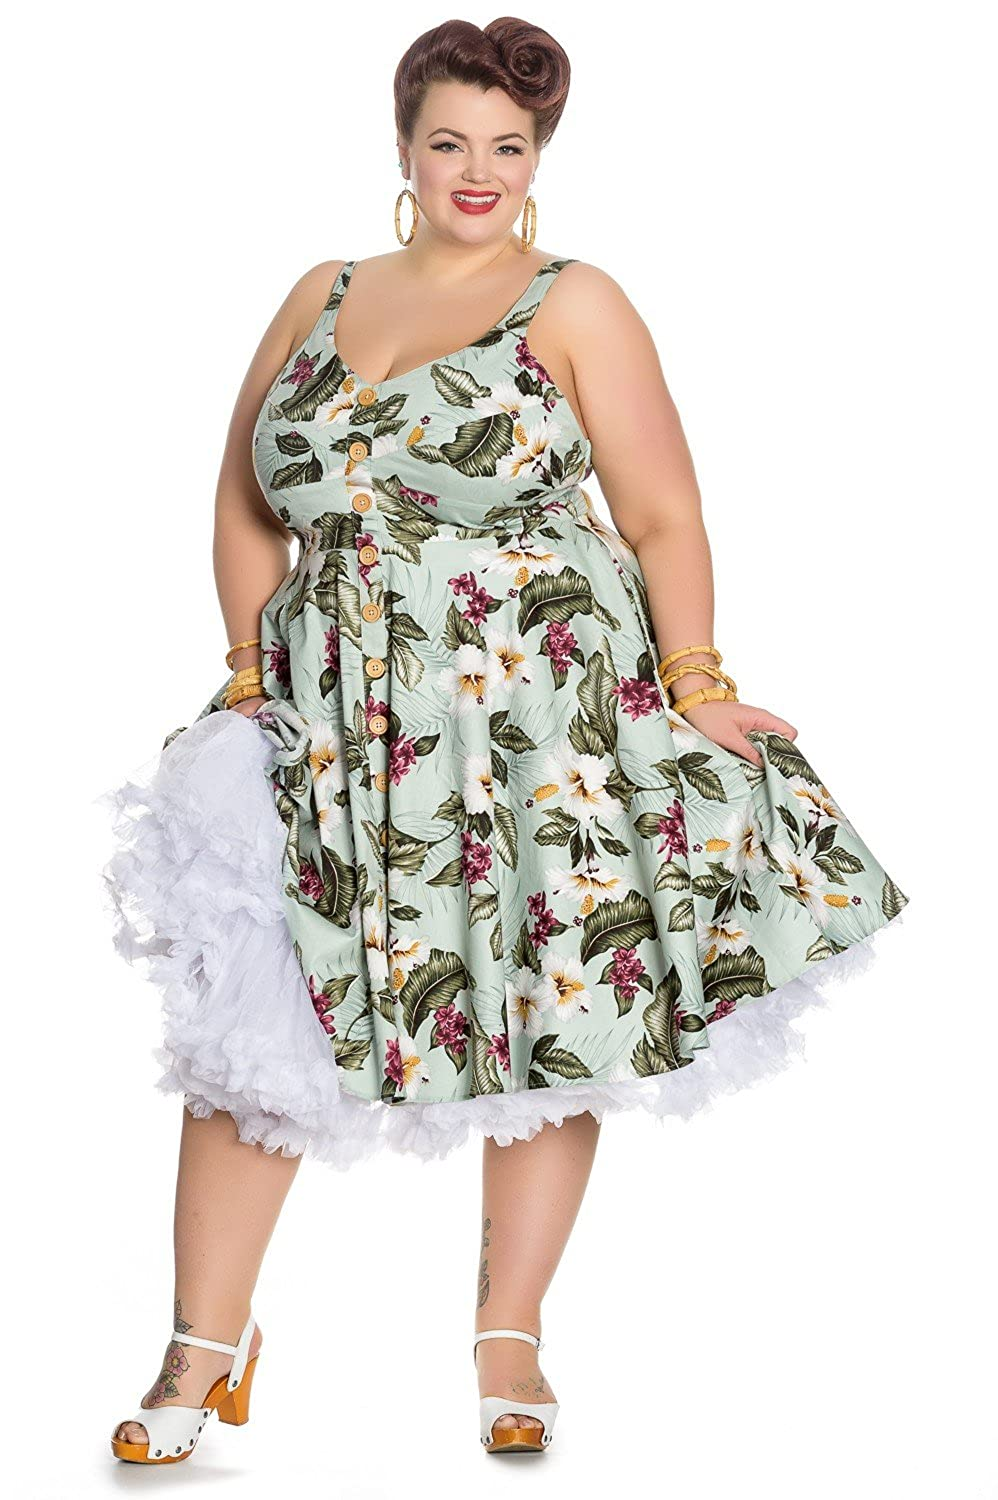 Rockabilly Dresses | Rockabilly Clothing | Viva Las Vegas Hell Bunny Tahiti Tropical Floral 50s Vintage Rockabilly Flare Swing Party Dress $61.99 AT vintagedancer.com